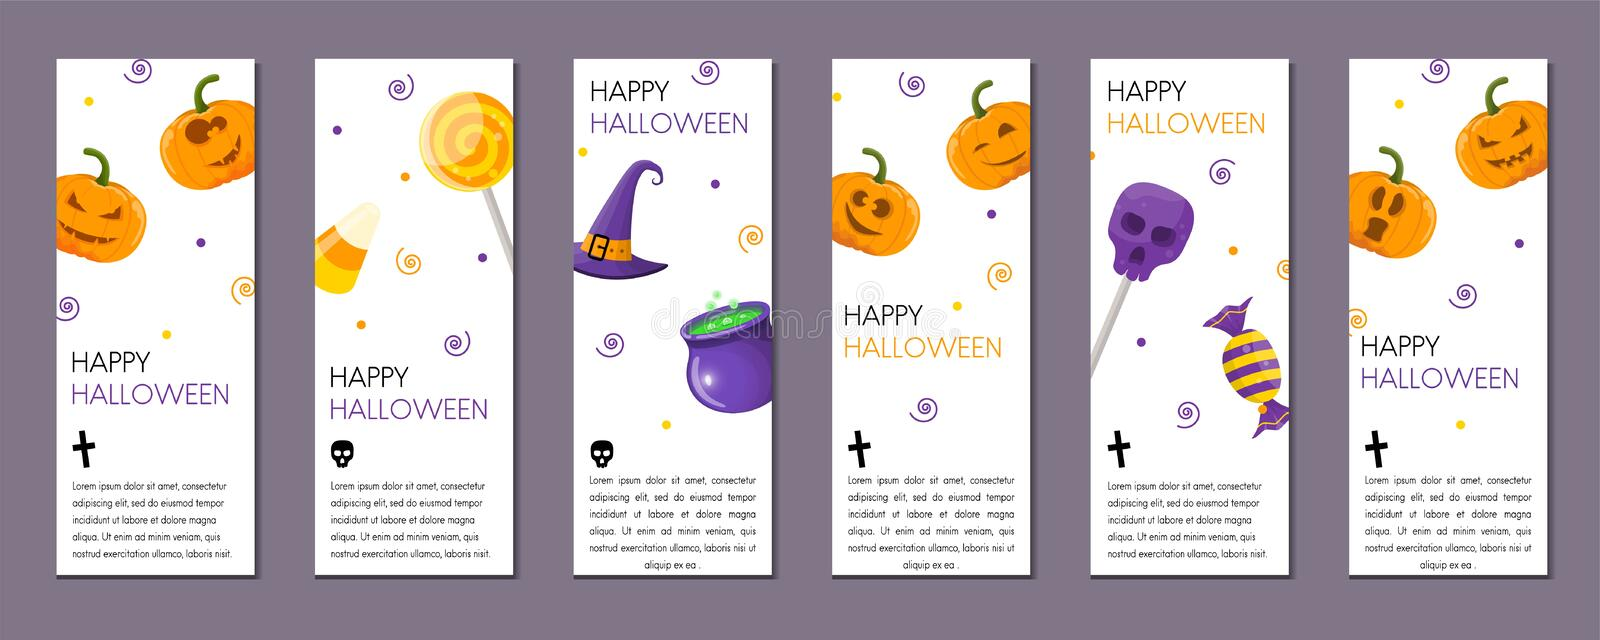 Set of Halloween vertical banners with Halloween symbols on whit stock illustration